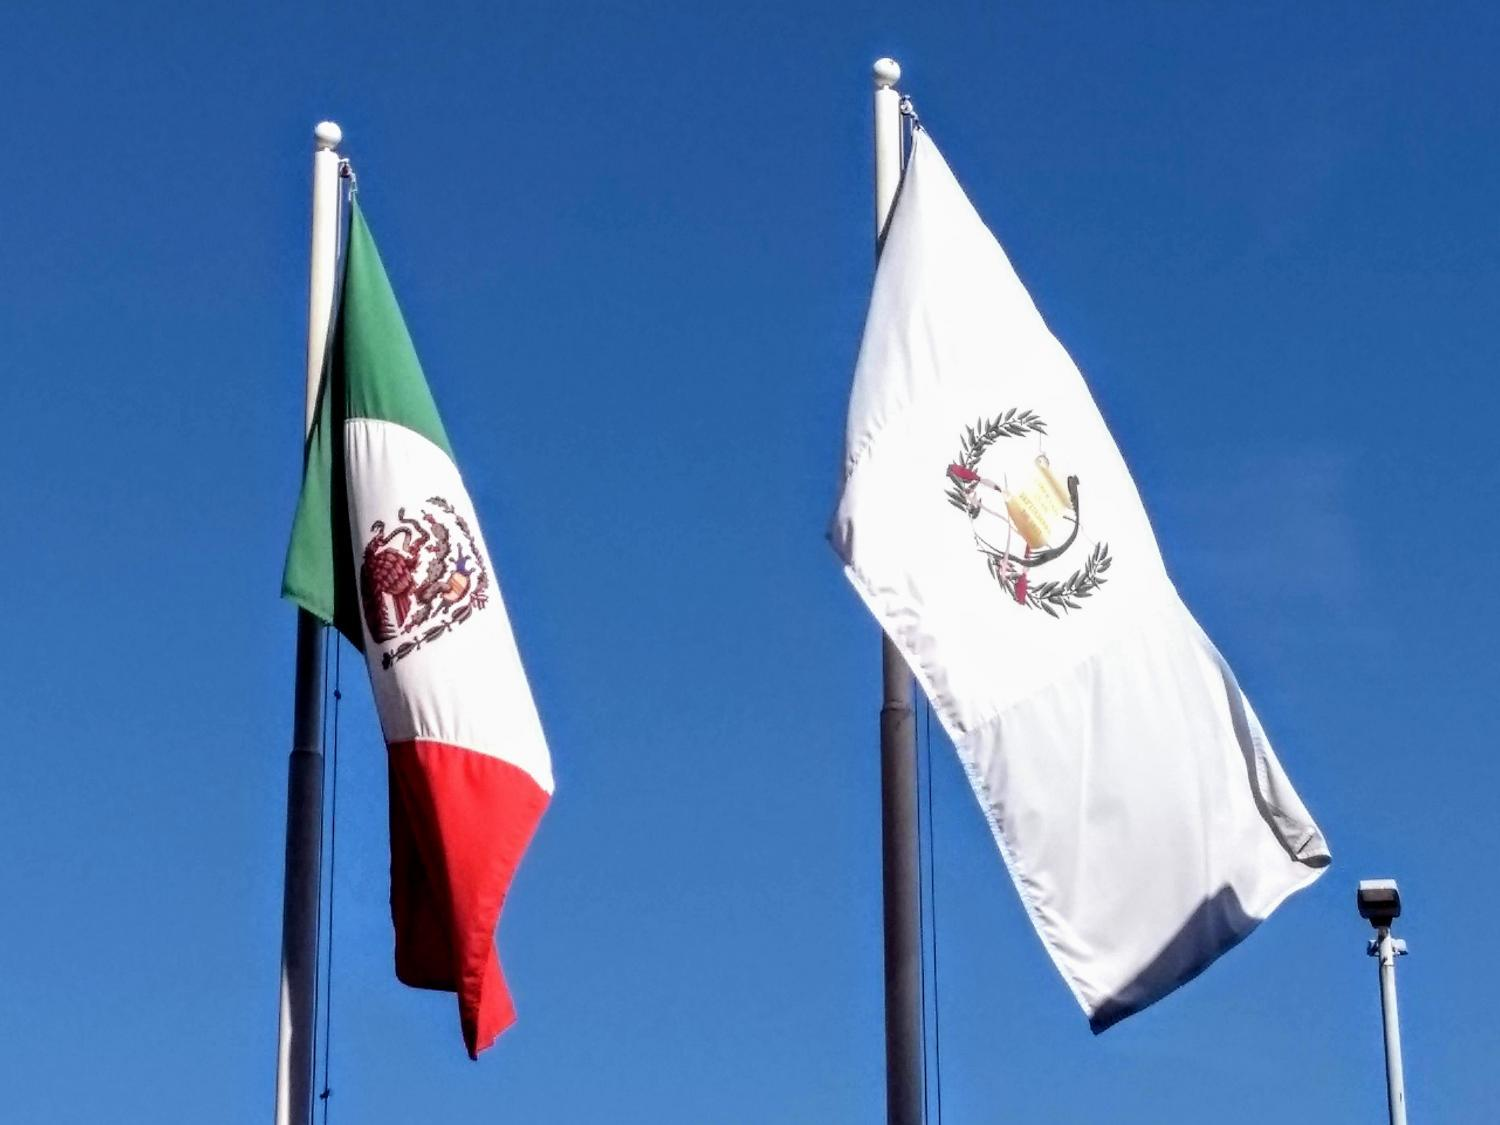 flags of Mexico and Guatemala